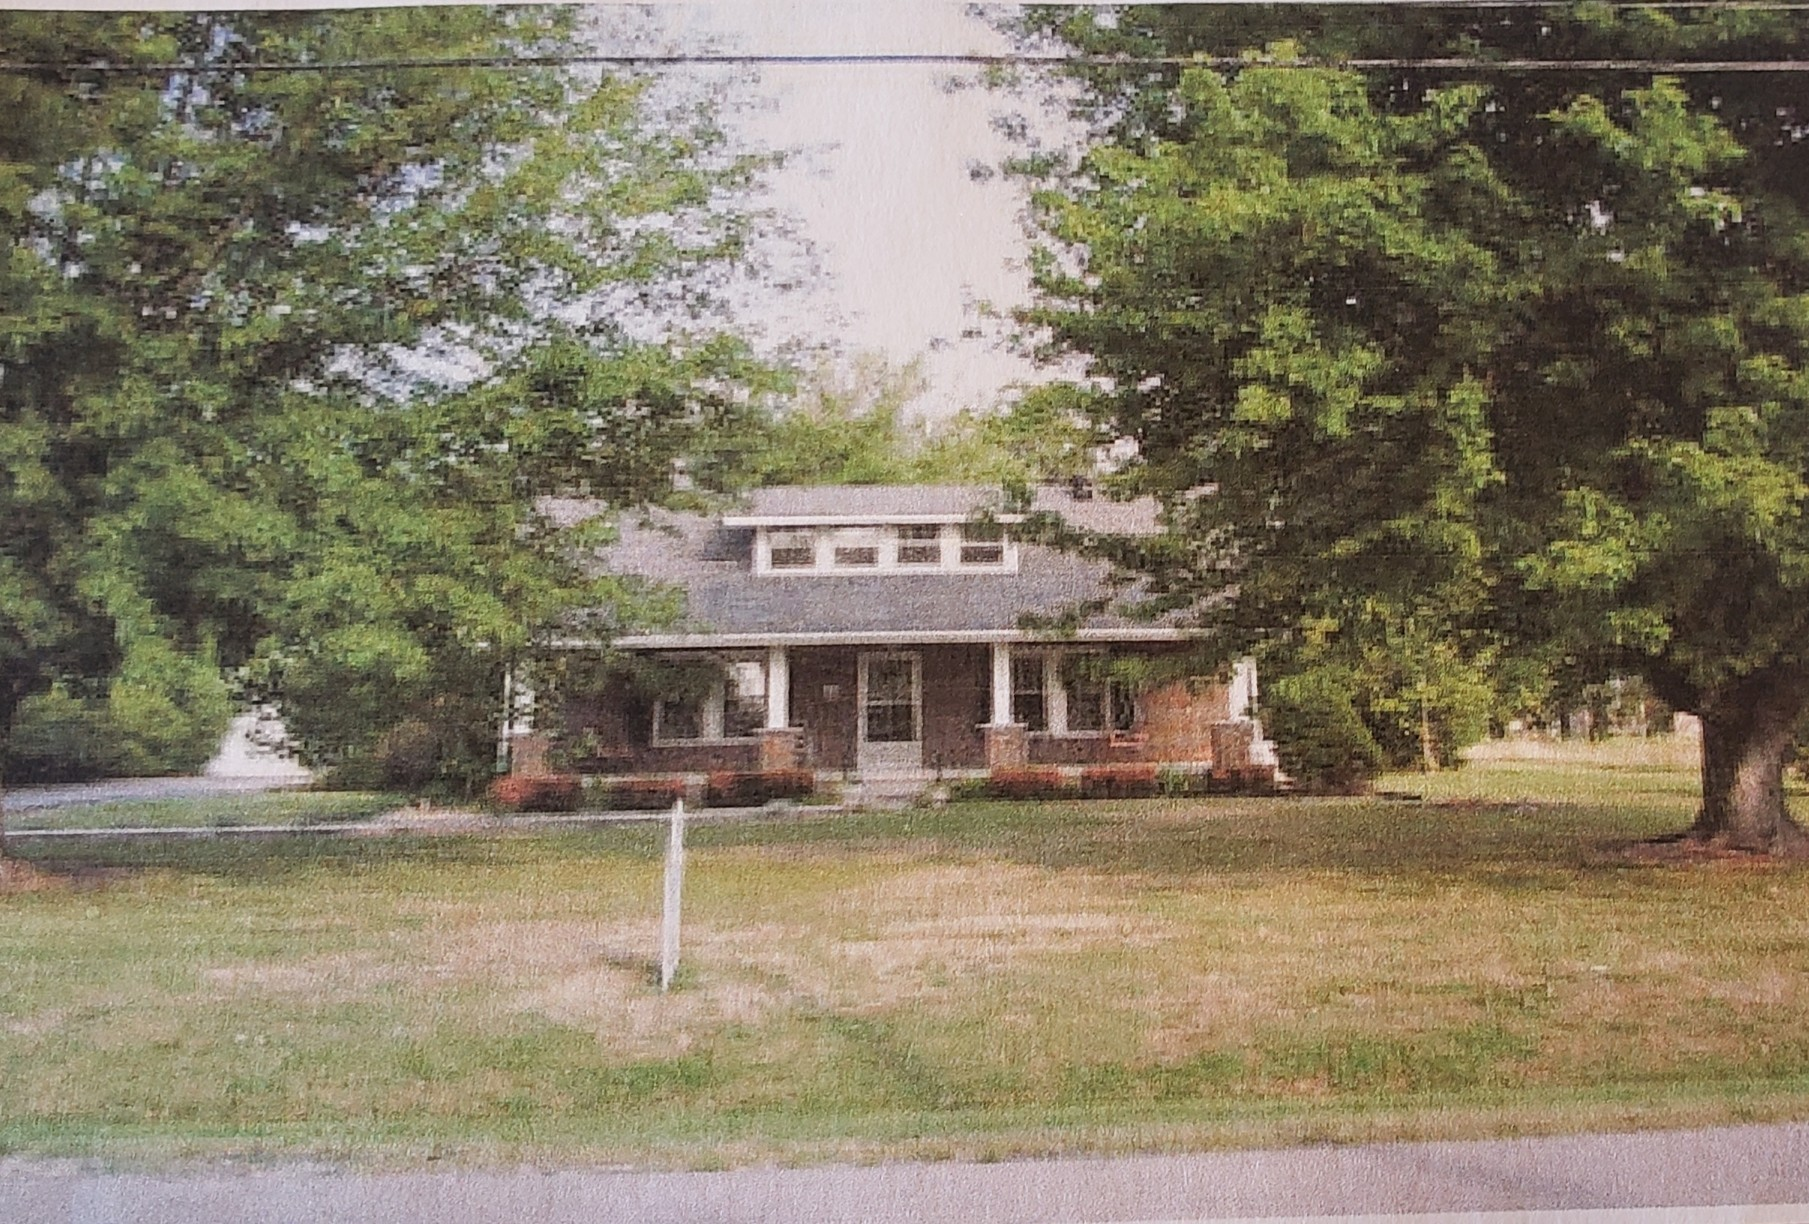 1225 College St, S Property Photo - Smithville, TN real estate listing